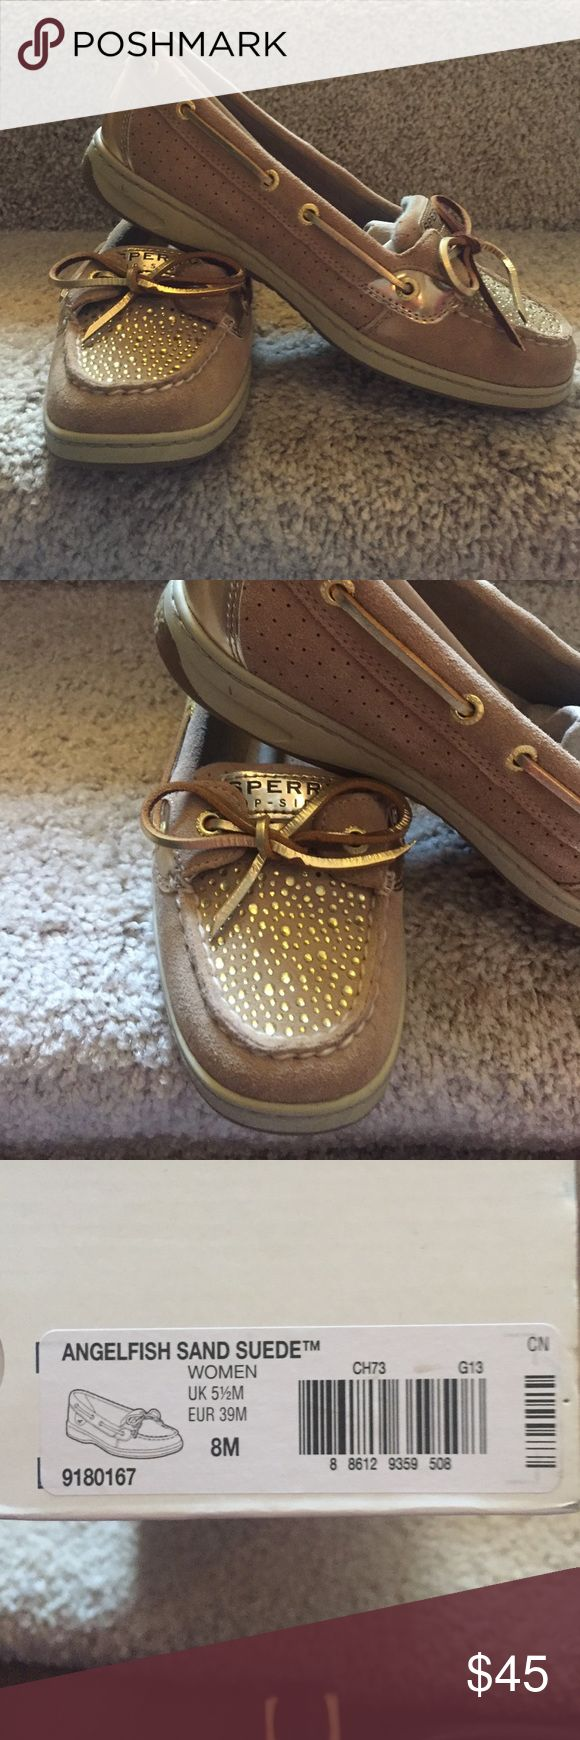 Women's sperry angelfish gold and tan topsiders, 8 Women's sperry topsiders gold and tan angelfish size 8M. NWT, never worn, bought from Nordstrom, excellent condition!!! Sperry Top-Sider Shoes Flats & Loafers